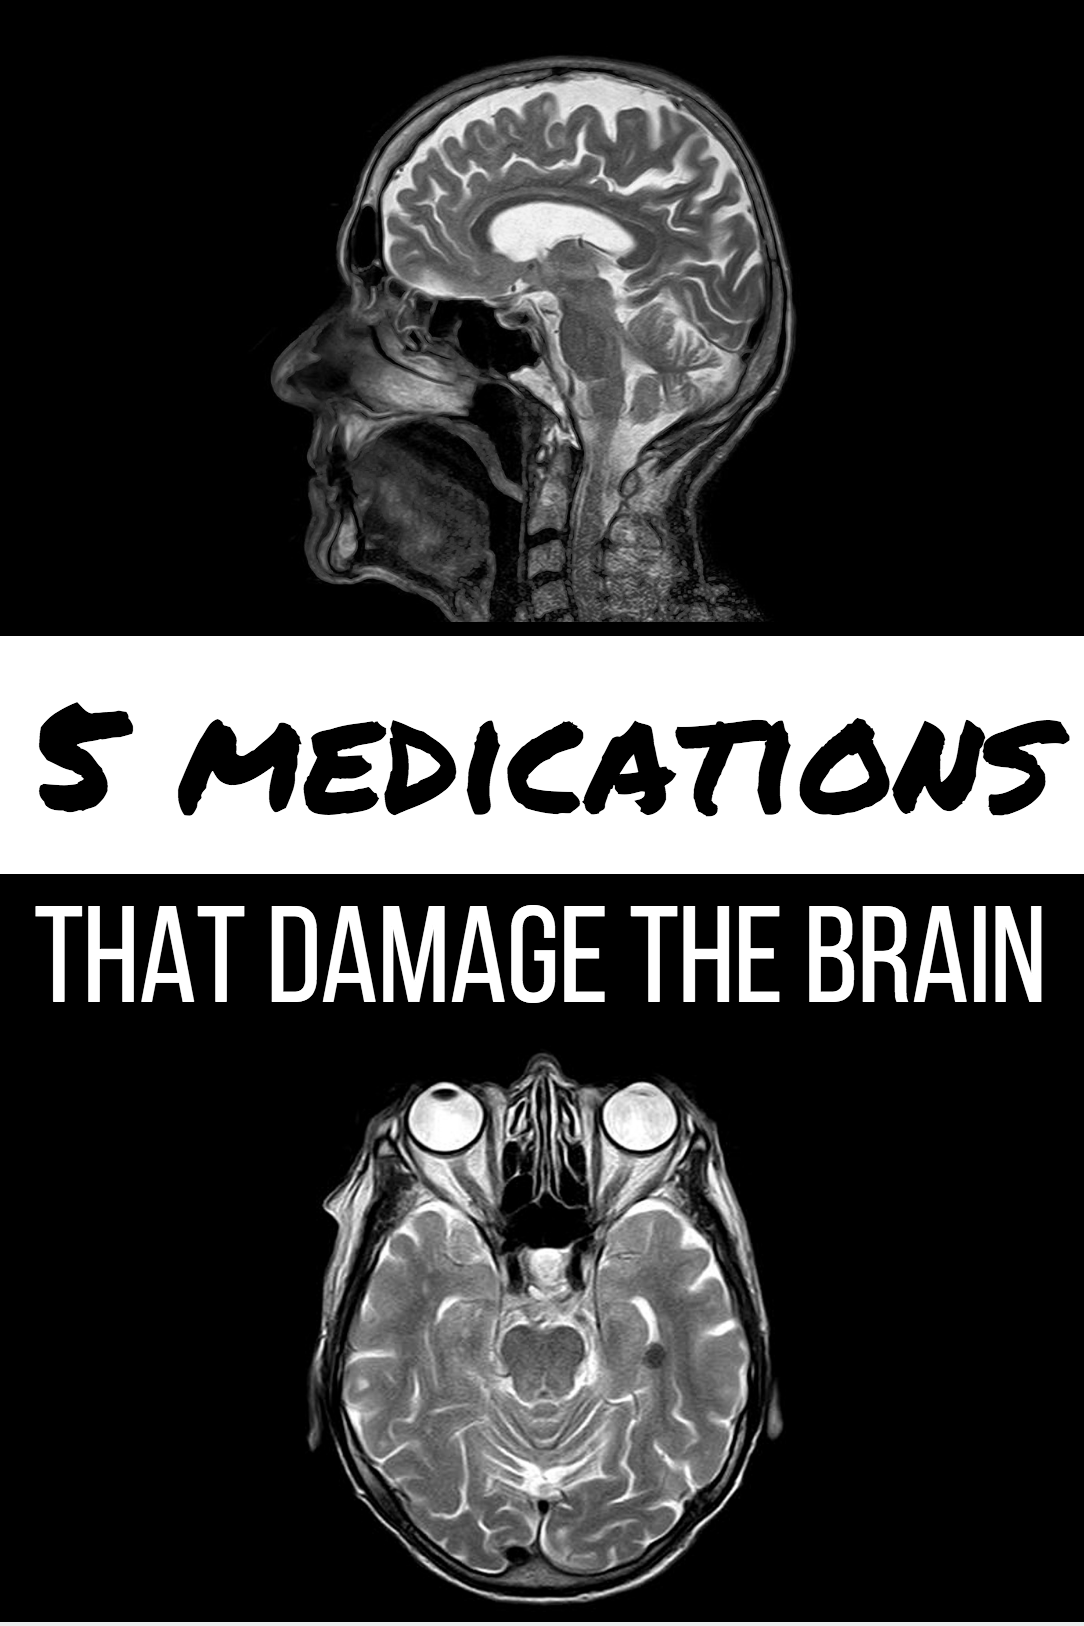 5 Medications that Damage the Brain